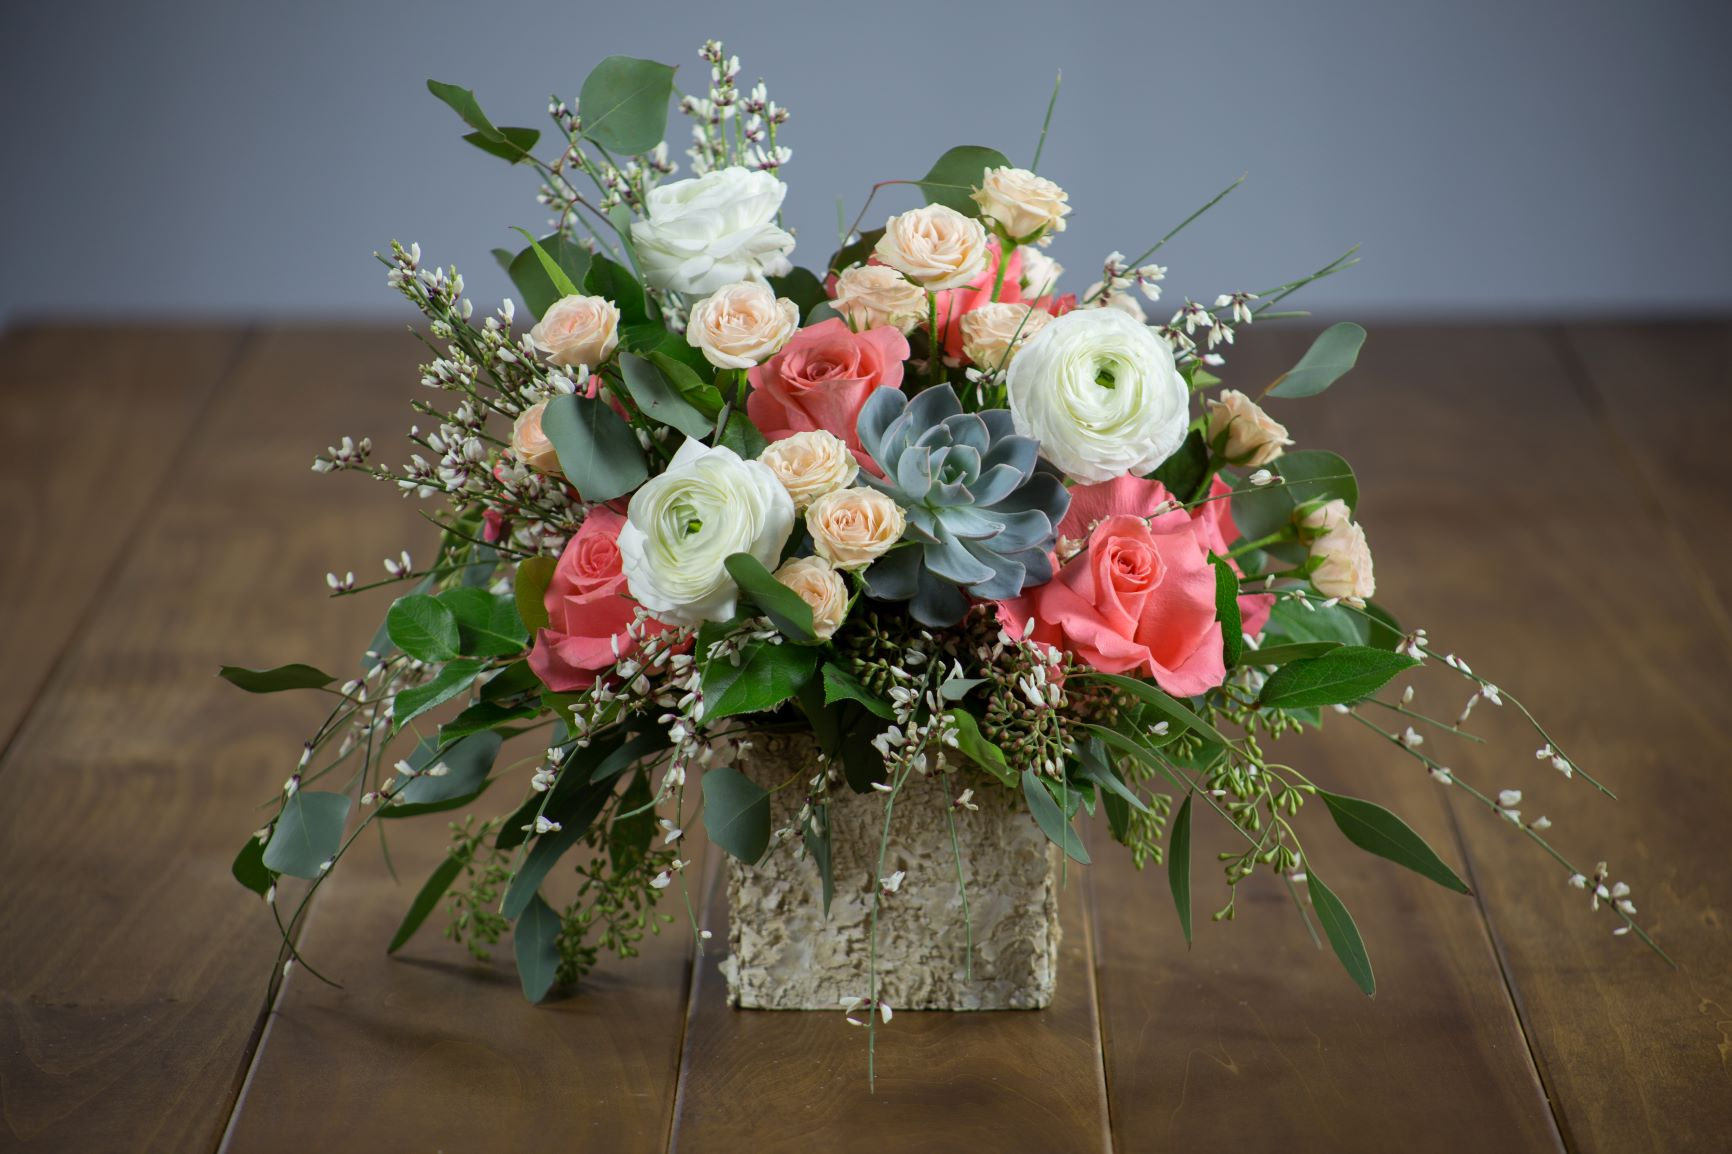 Centerpiece with white and pink flowers